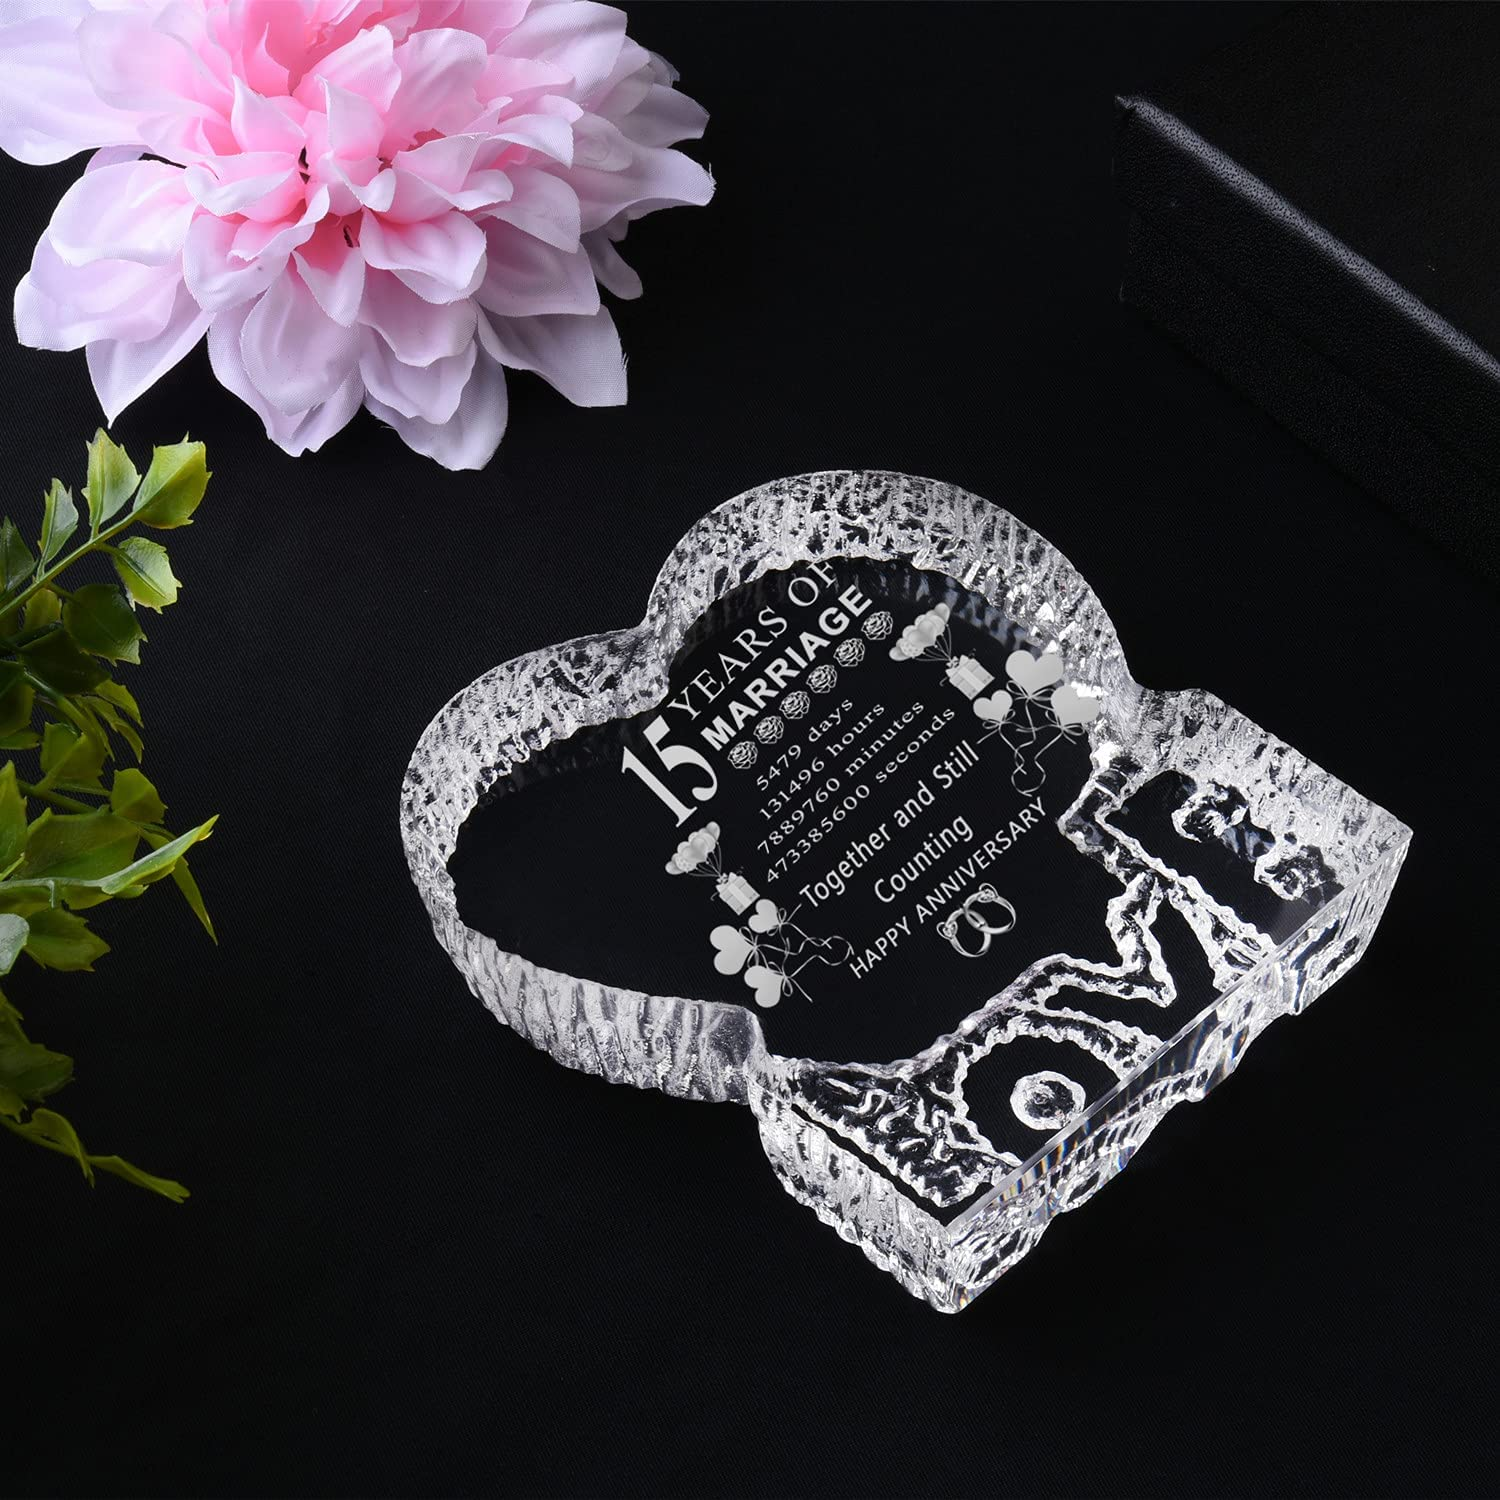 Crystal Heart Wedding Anniversary Gift For Parents